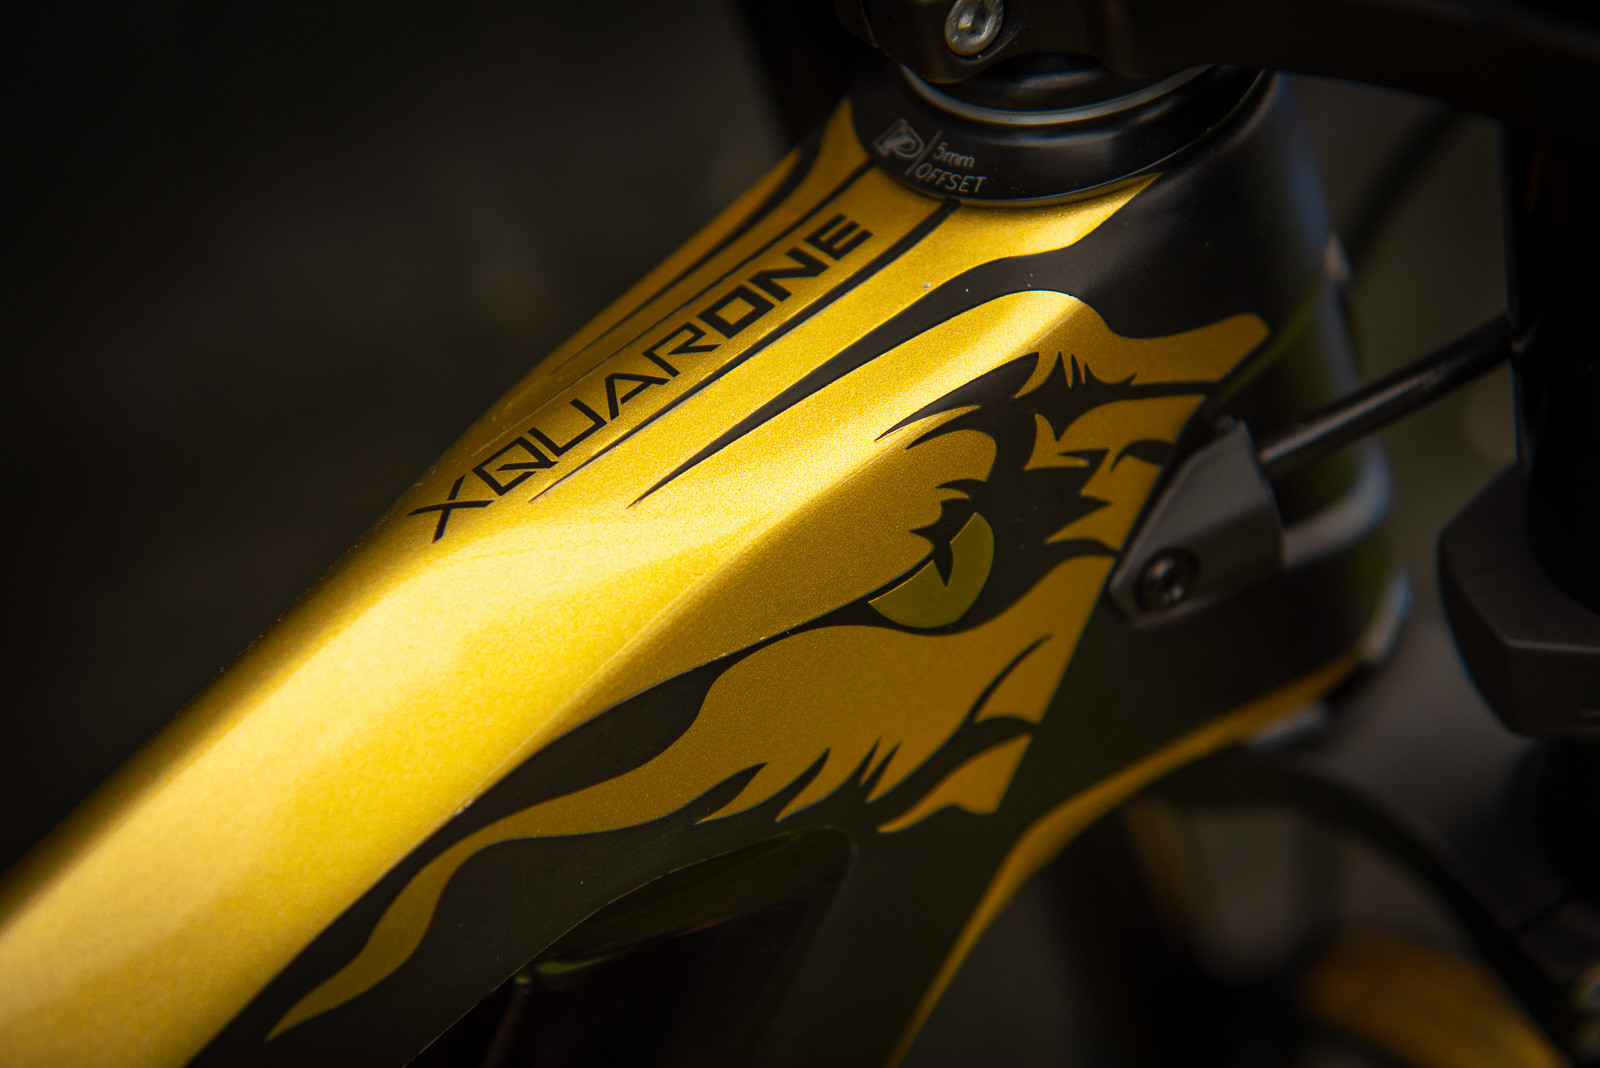 Eyes on the Prize - WORLD CHAMPS BIKES - Mick & Tracey Hannah's Polygons - Mountain Biking Pictures - Vital MTB